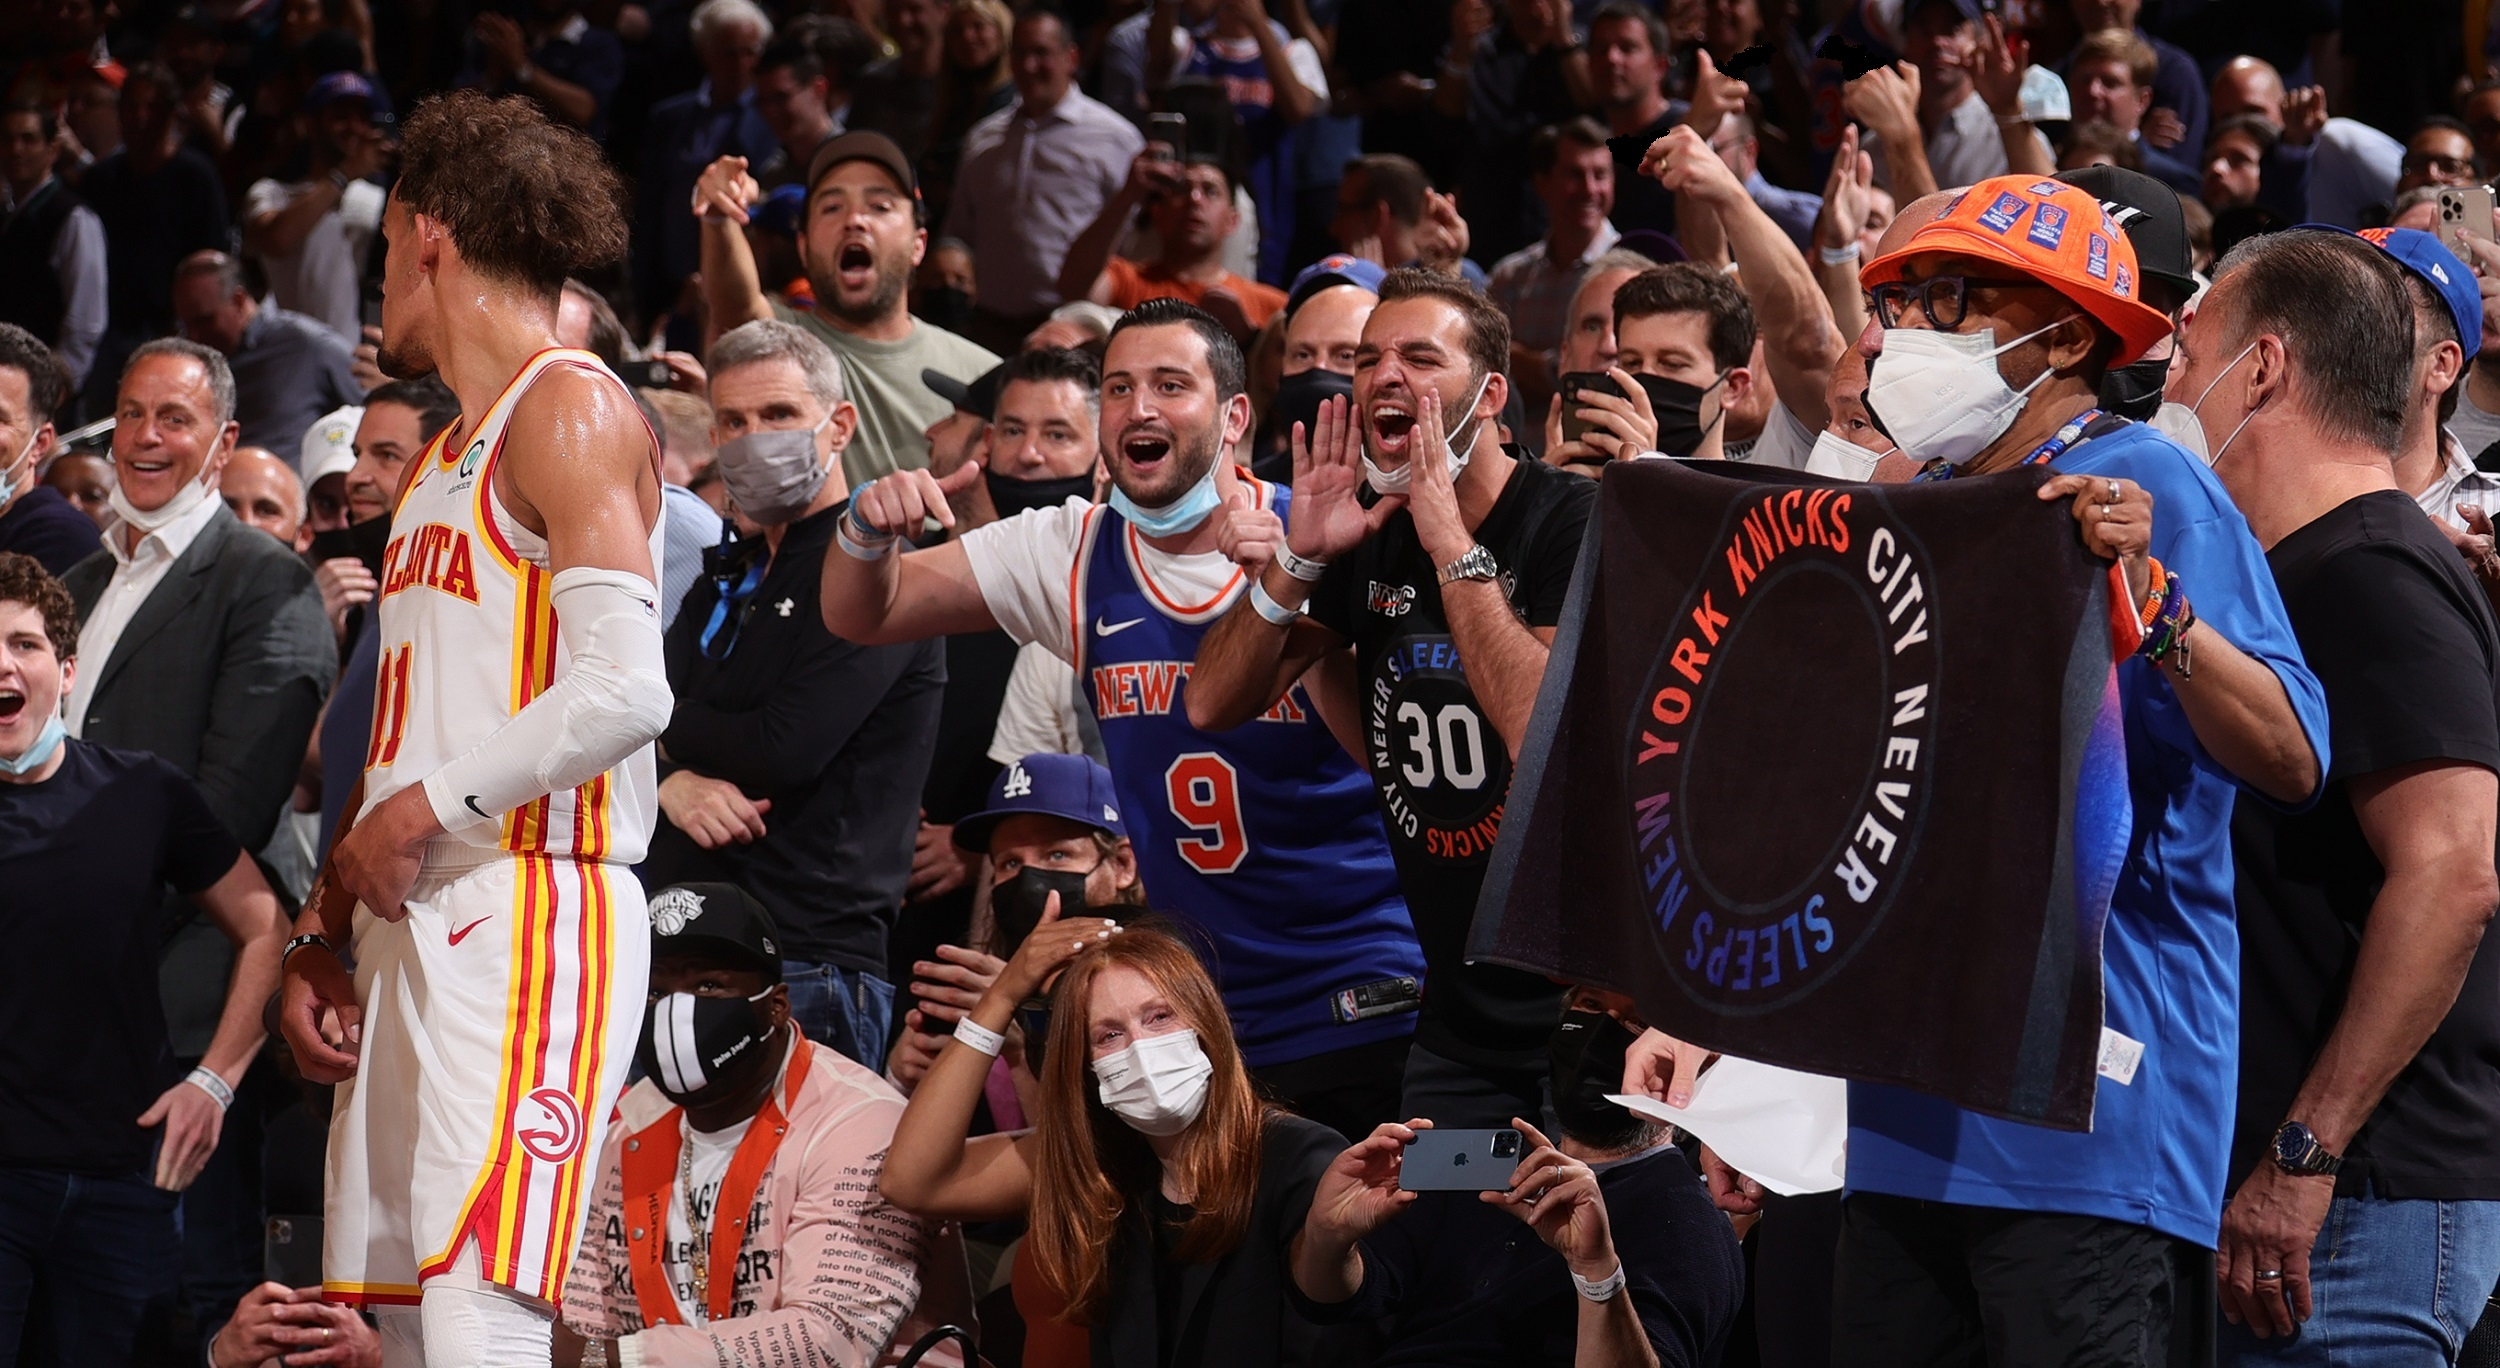 NBA releases statement on fan conduct at games